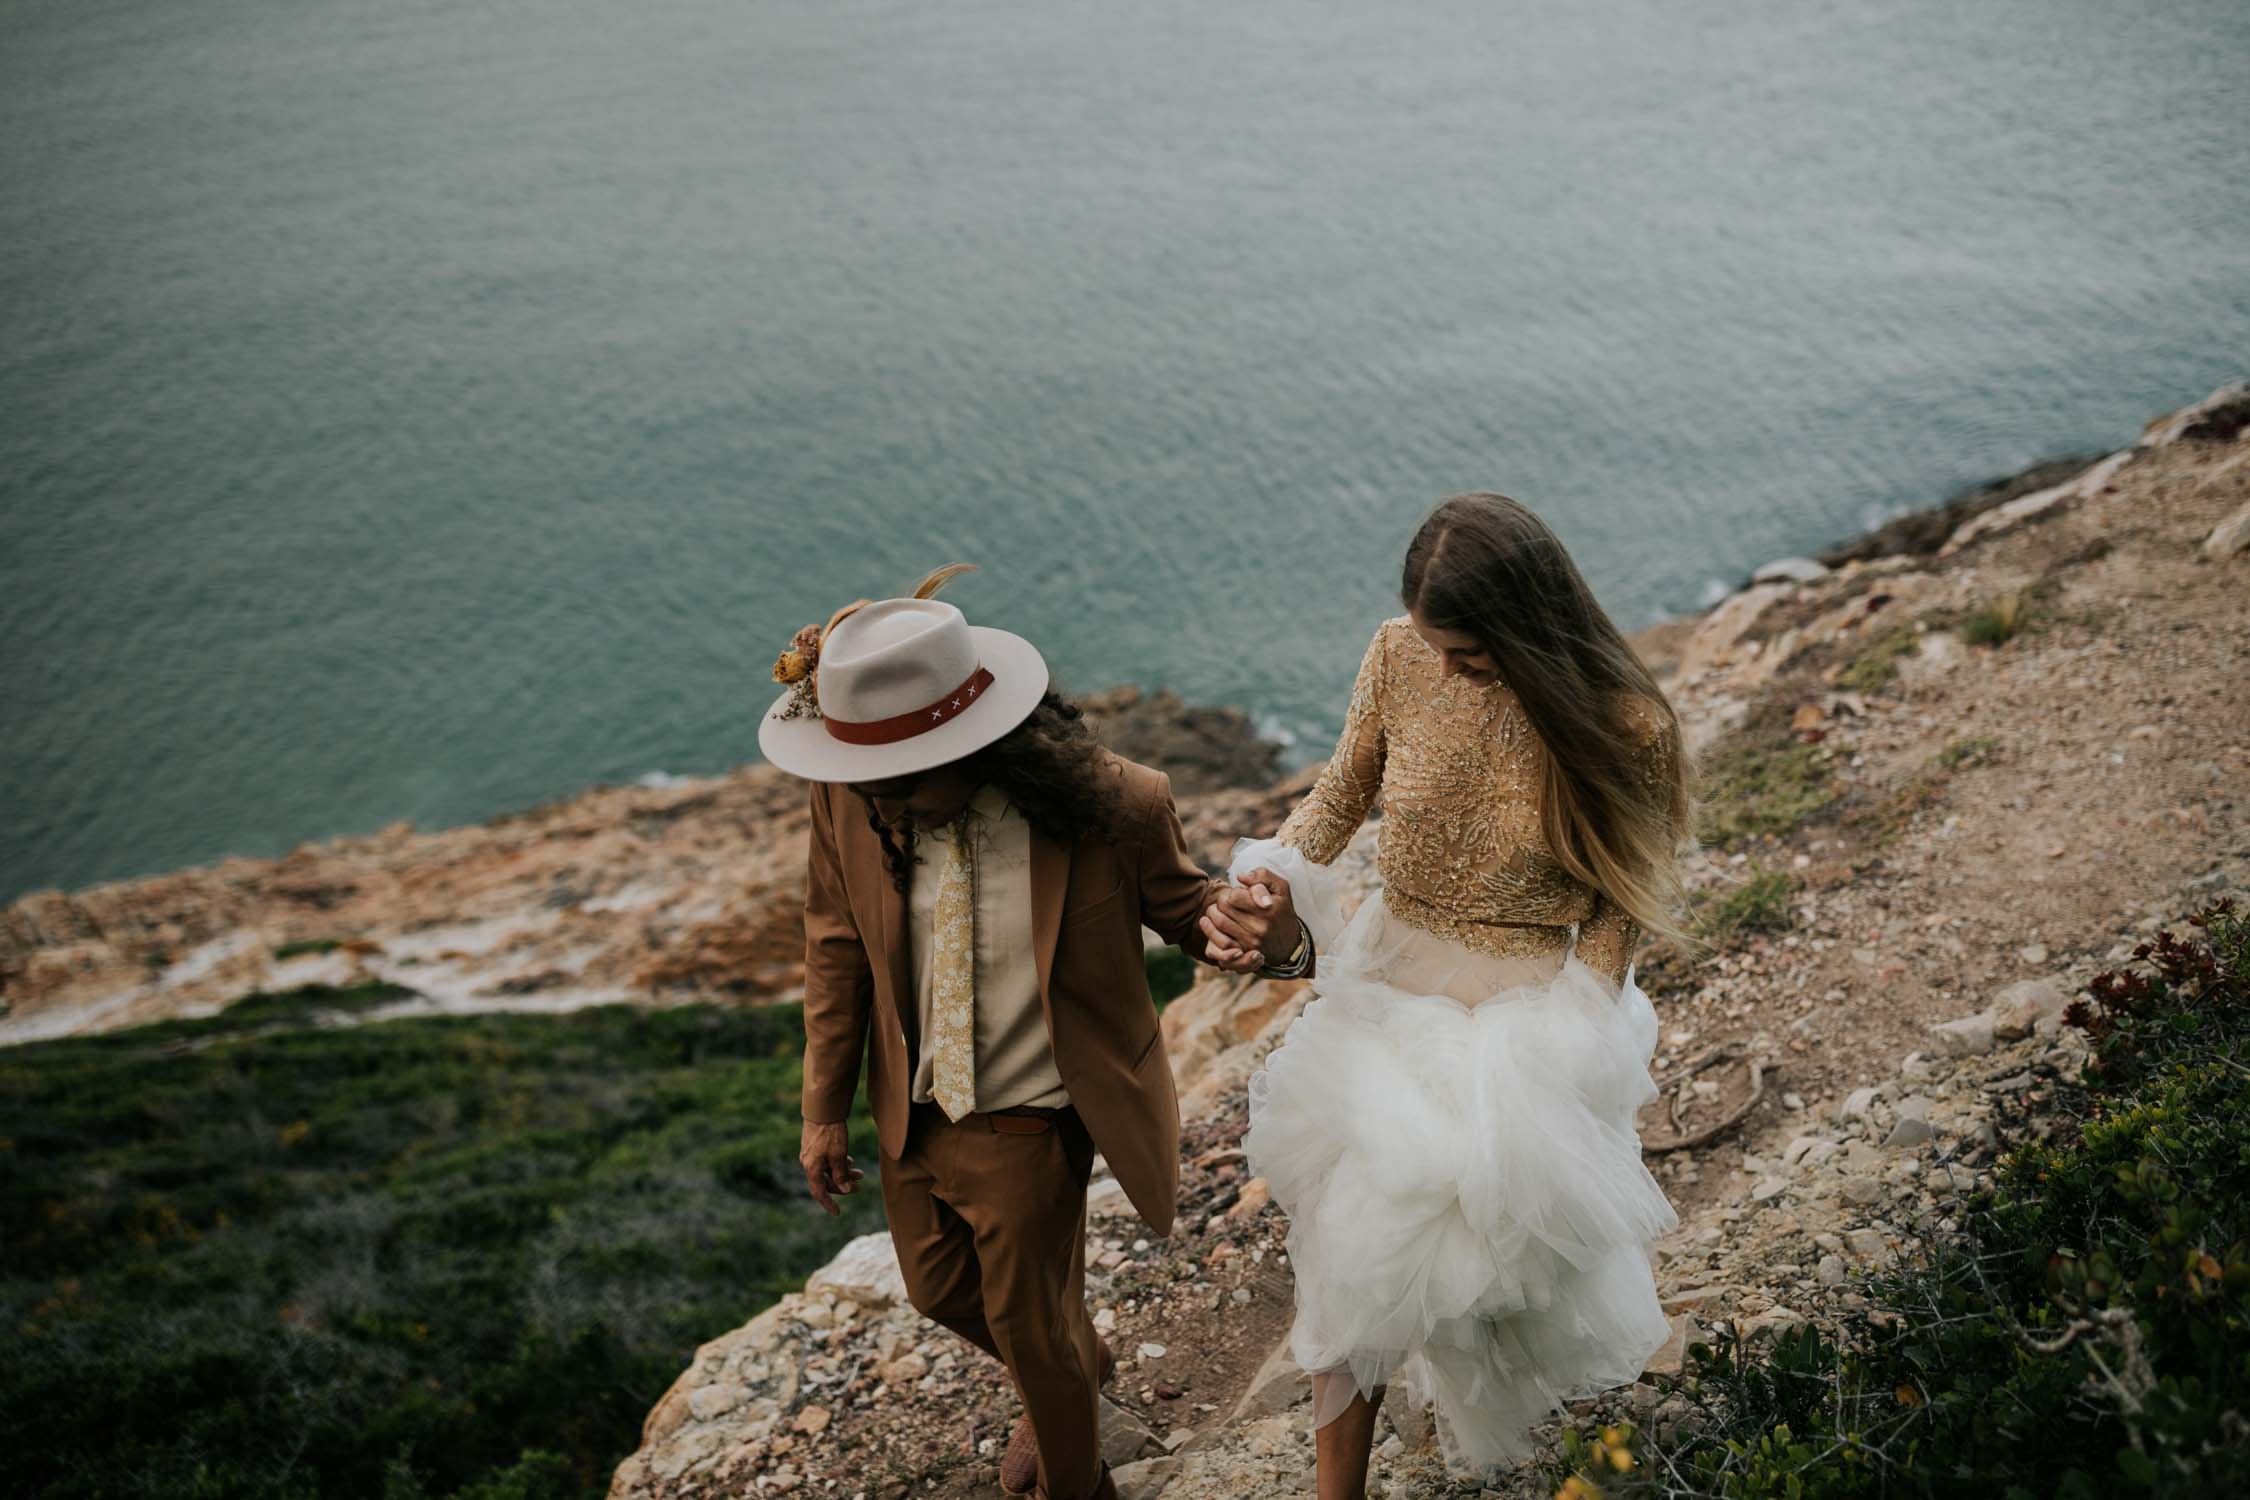 Adventurous wedding couple take their wedding photos in epic Robberg Nature Reserve, Plett, Garden Route, South Africa